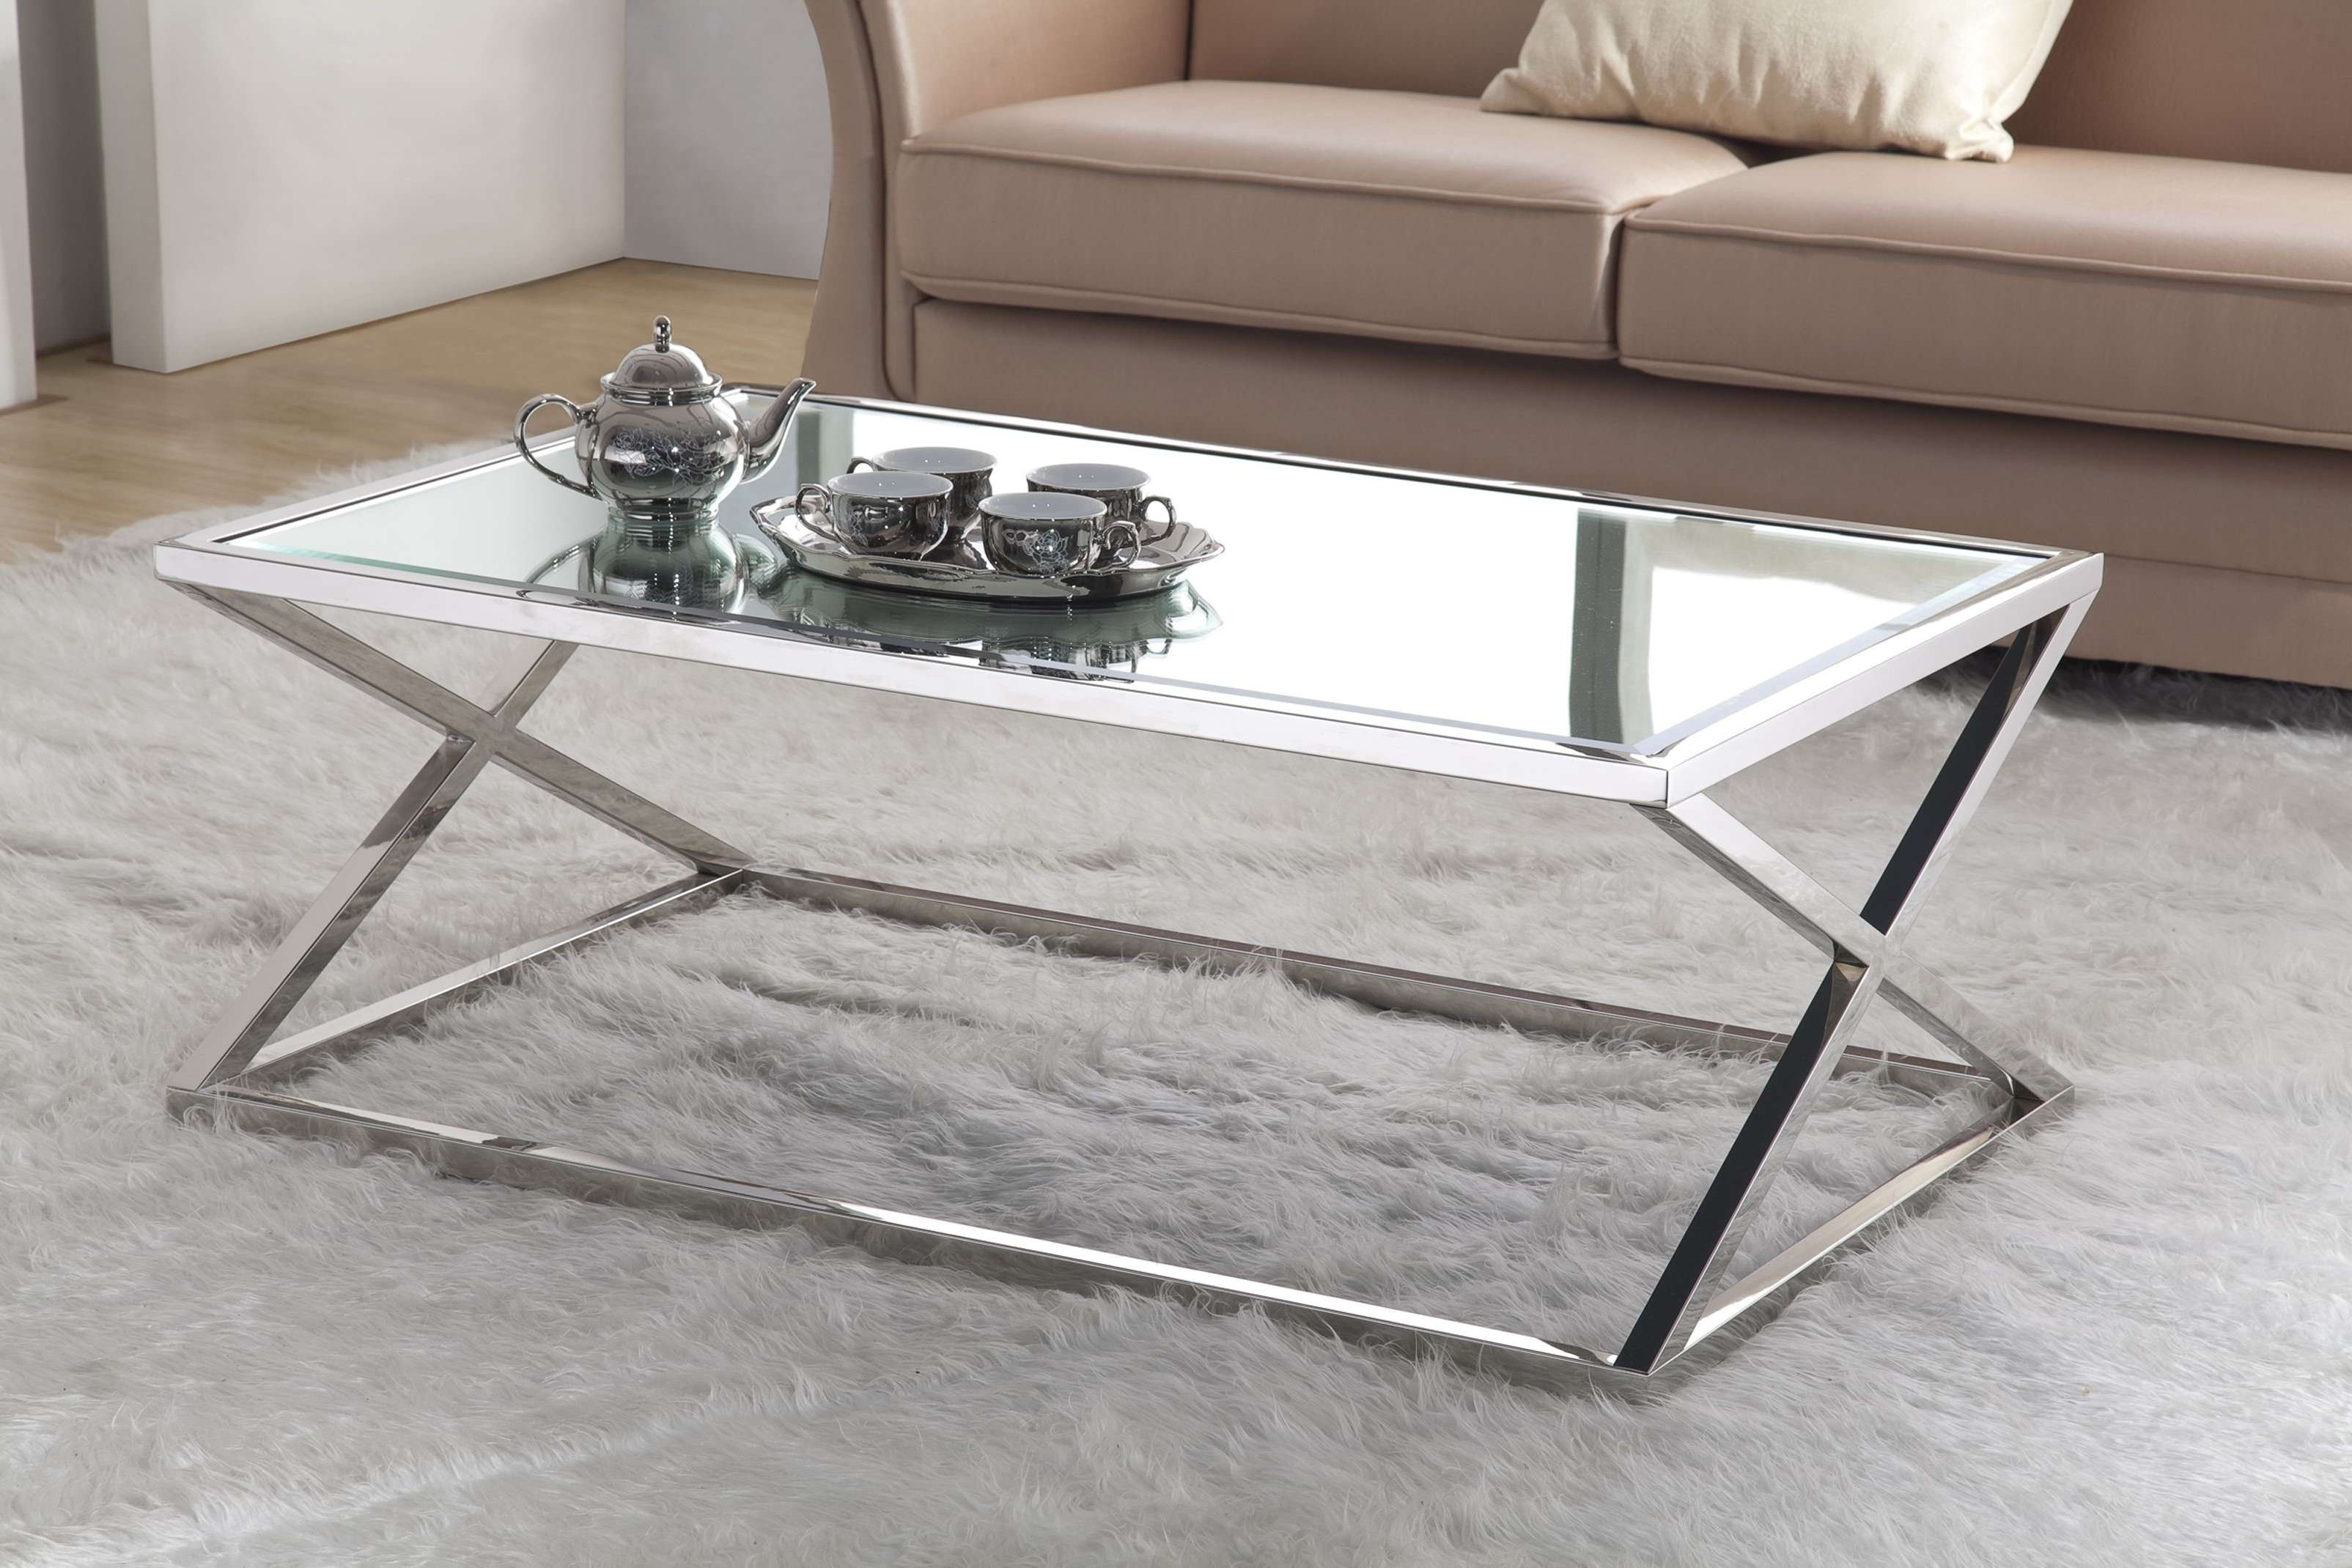 Attractive Silver Coffee Table Decorations — The Home Redesign For Best And Newest Metal Glass Coffee Tables (View 2 of 20)